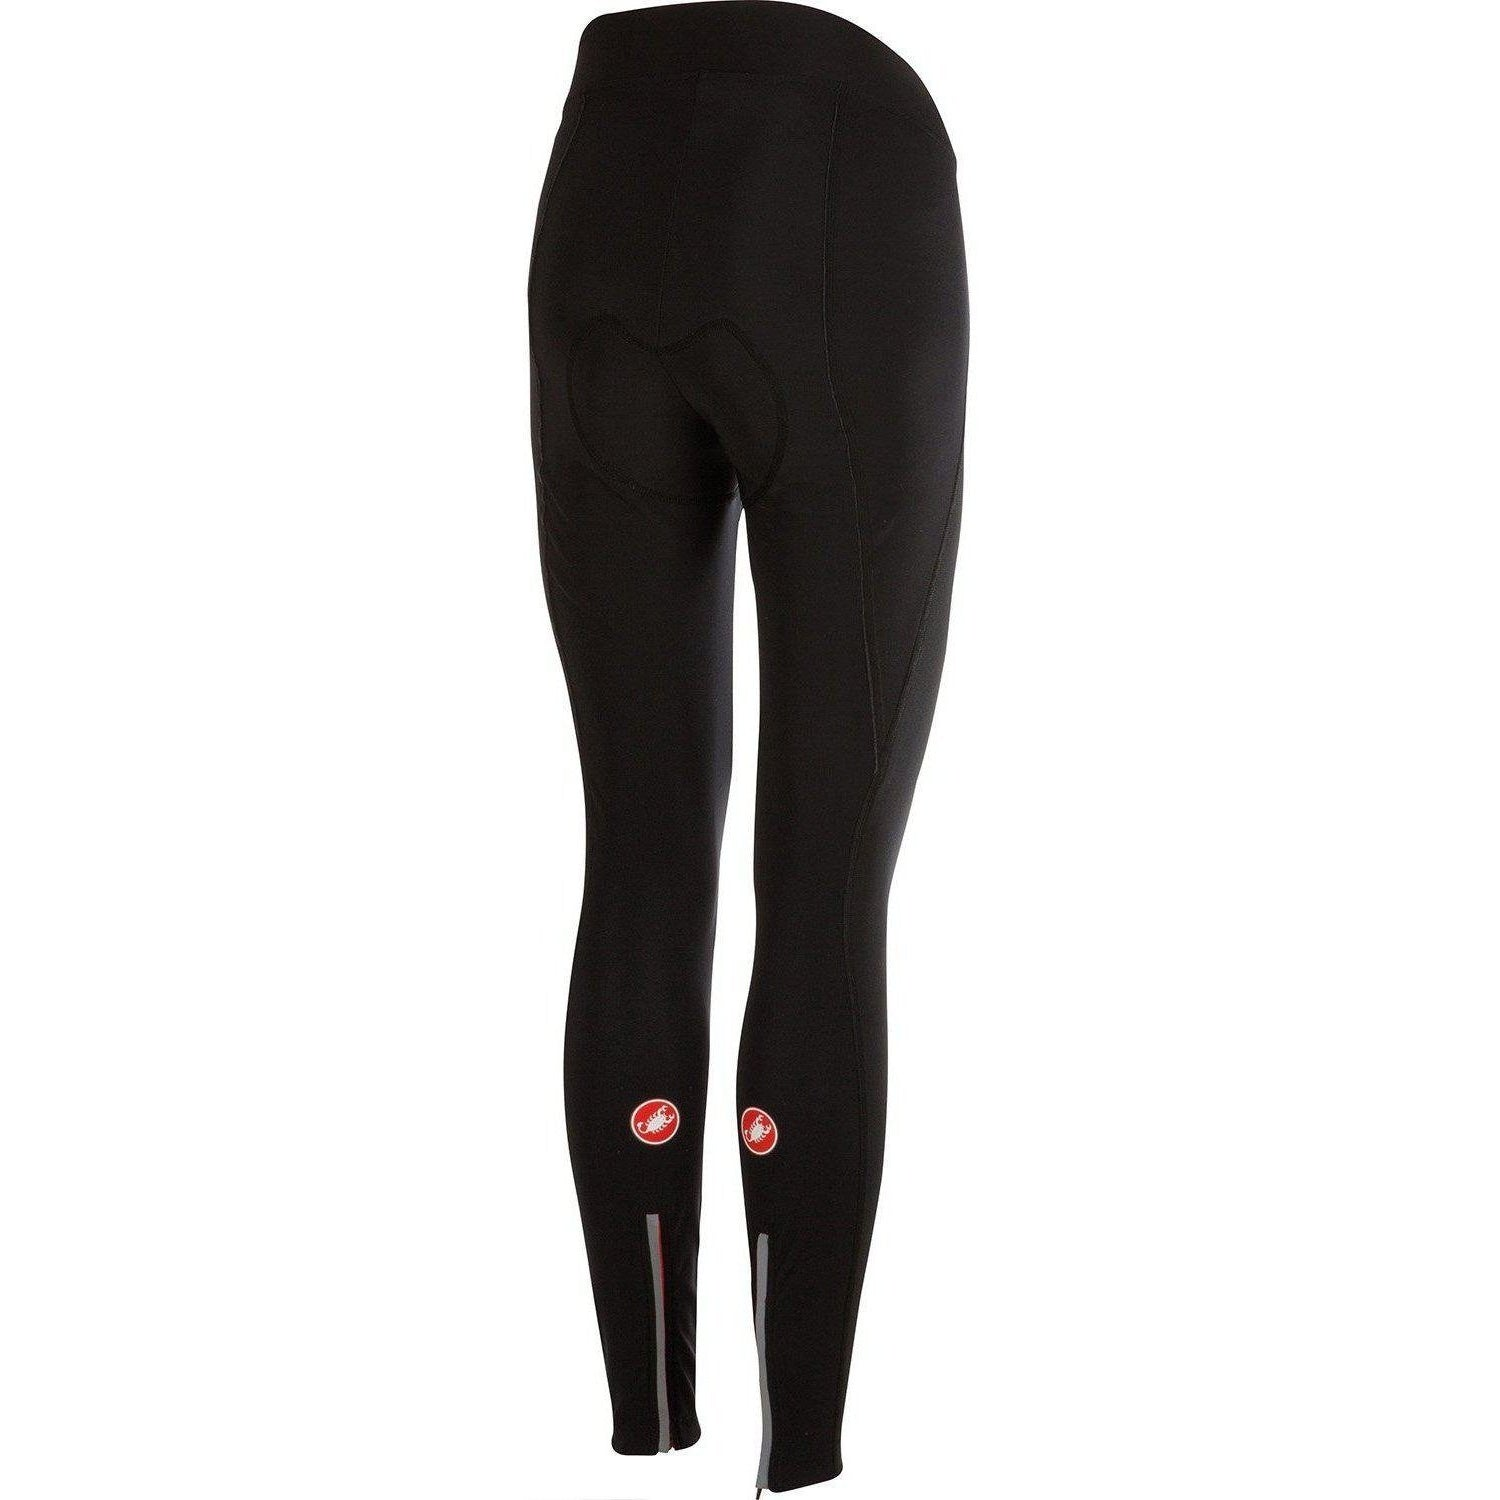 Castelli Meno Wind Women's Tights